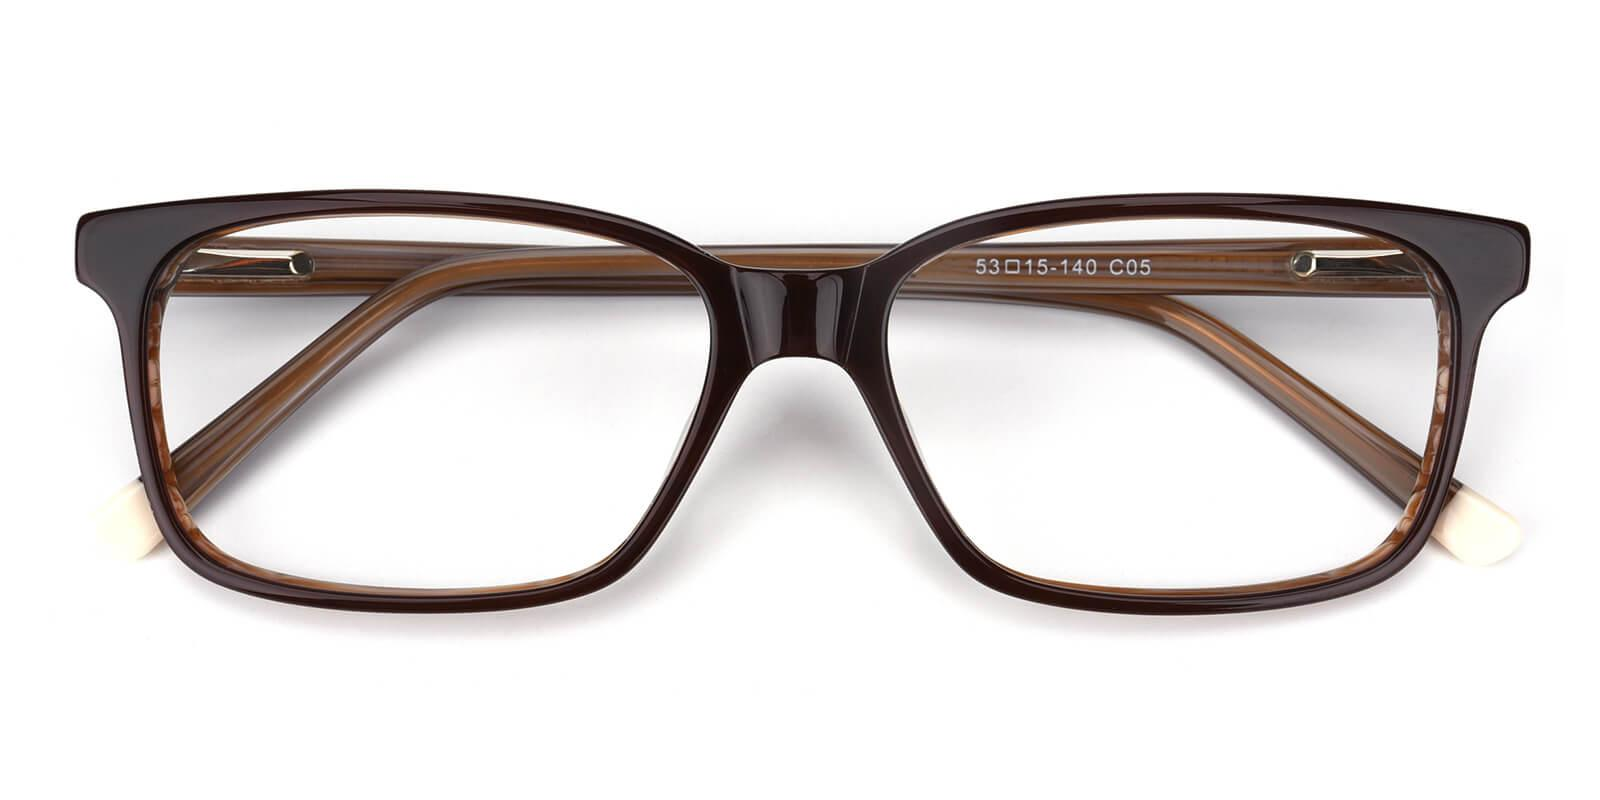 Bolayer-Striped-Rectangle-Acetate-Eyeglasses-detail